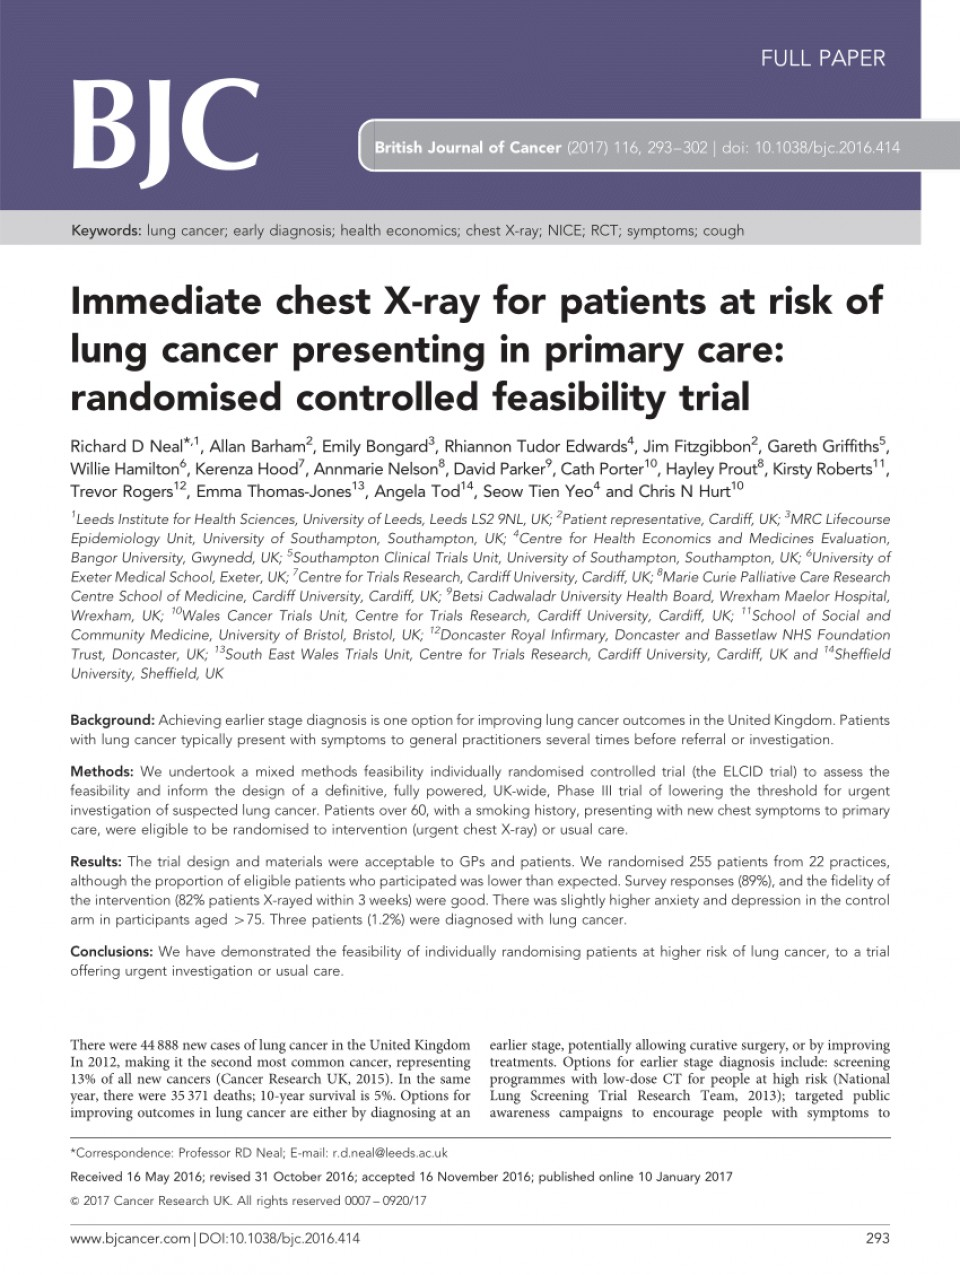 010 Lung Cancer Research Paper Conclusion Unusual 960